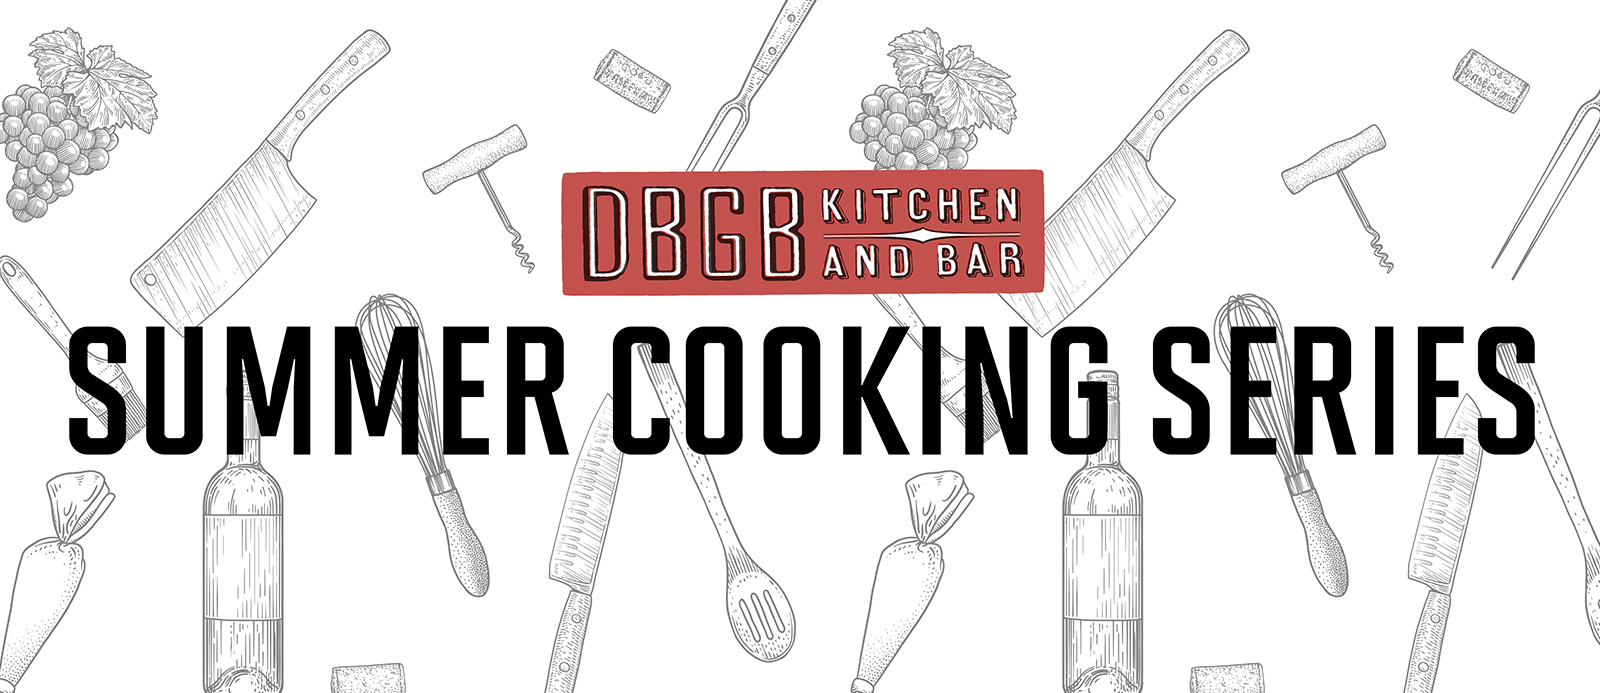 DGBG Kitchen & Bar | Daniel Boulud | CityCenterDC